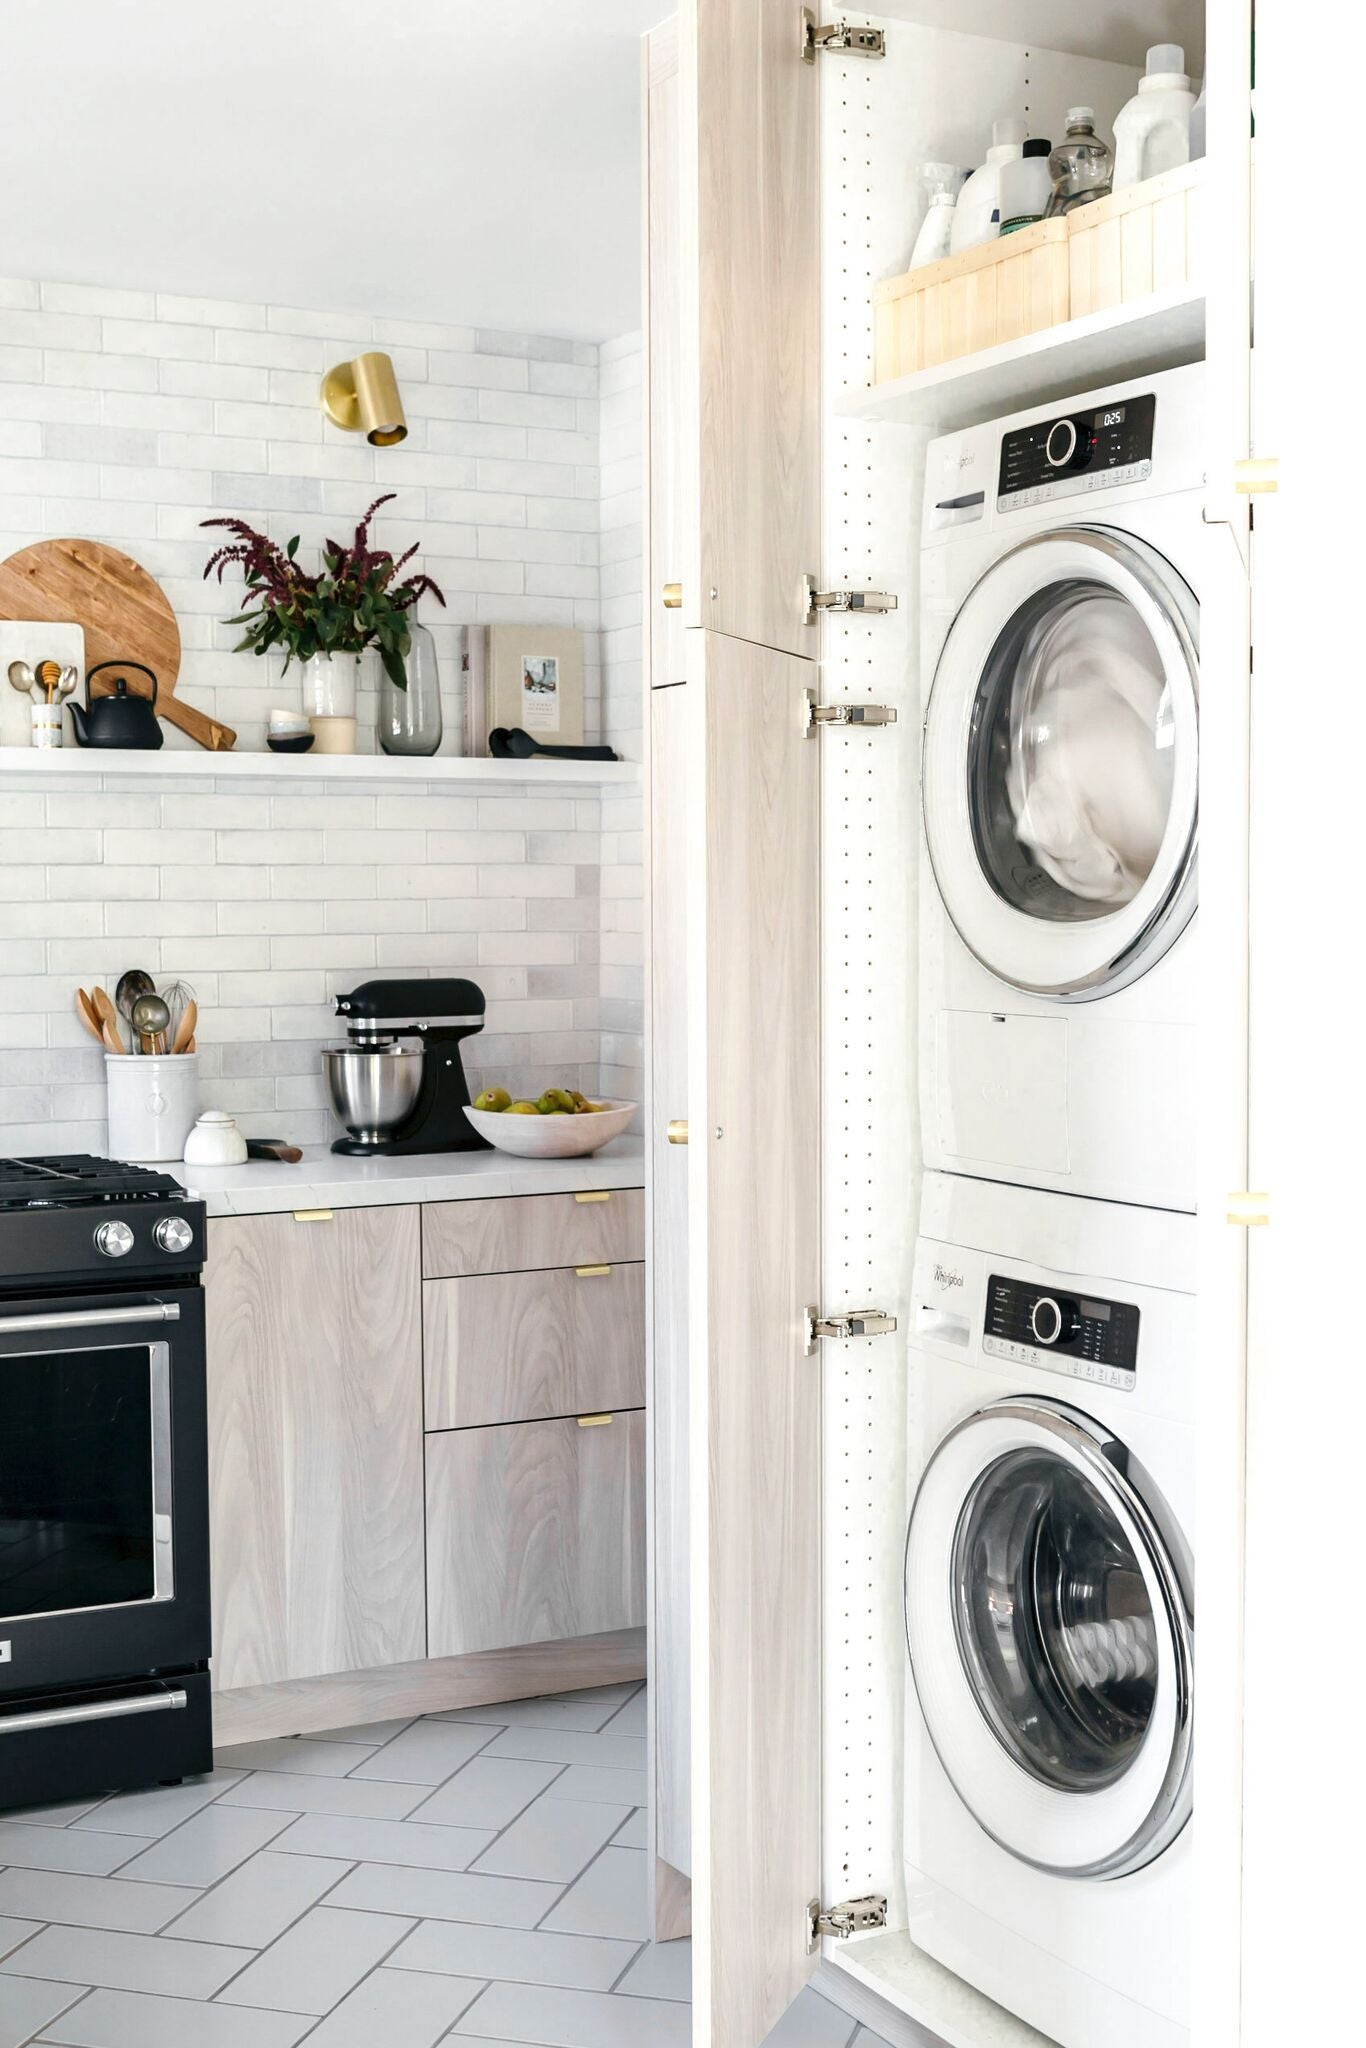 laundry closet in a kitchen